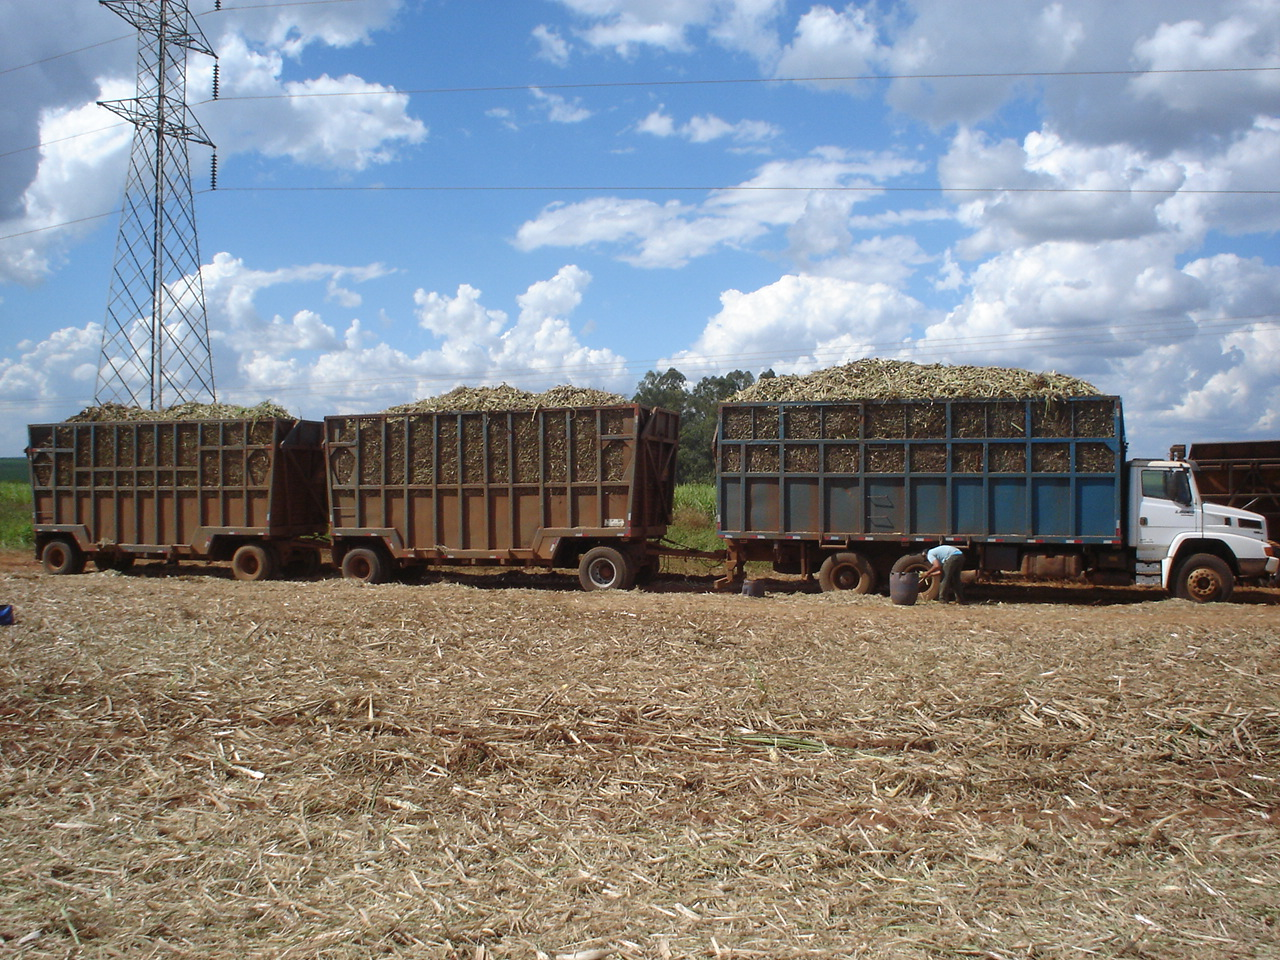 Sugarcane mechanical harvest in Jaboticabal, São Paulo, Brazil. Photo taken on November 14, 2006.